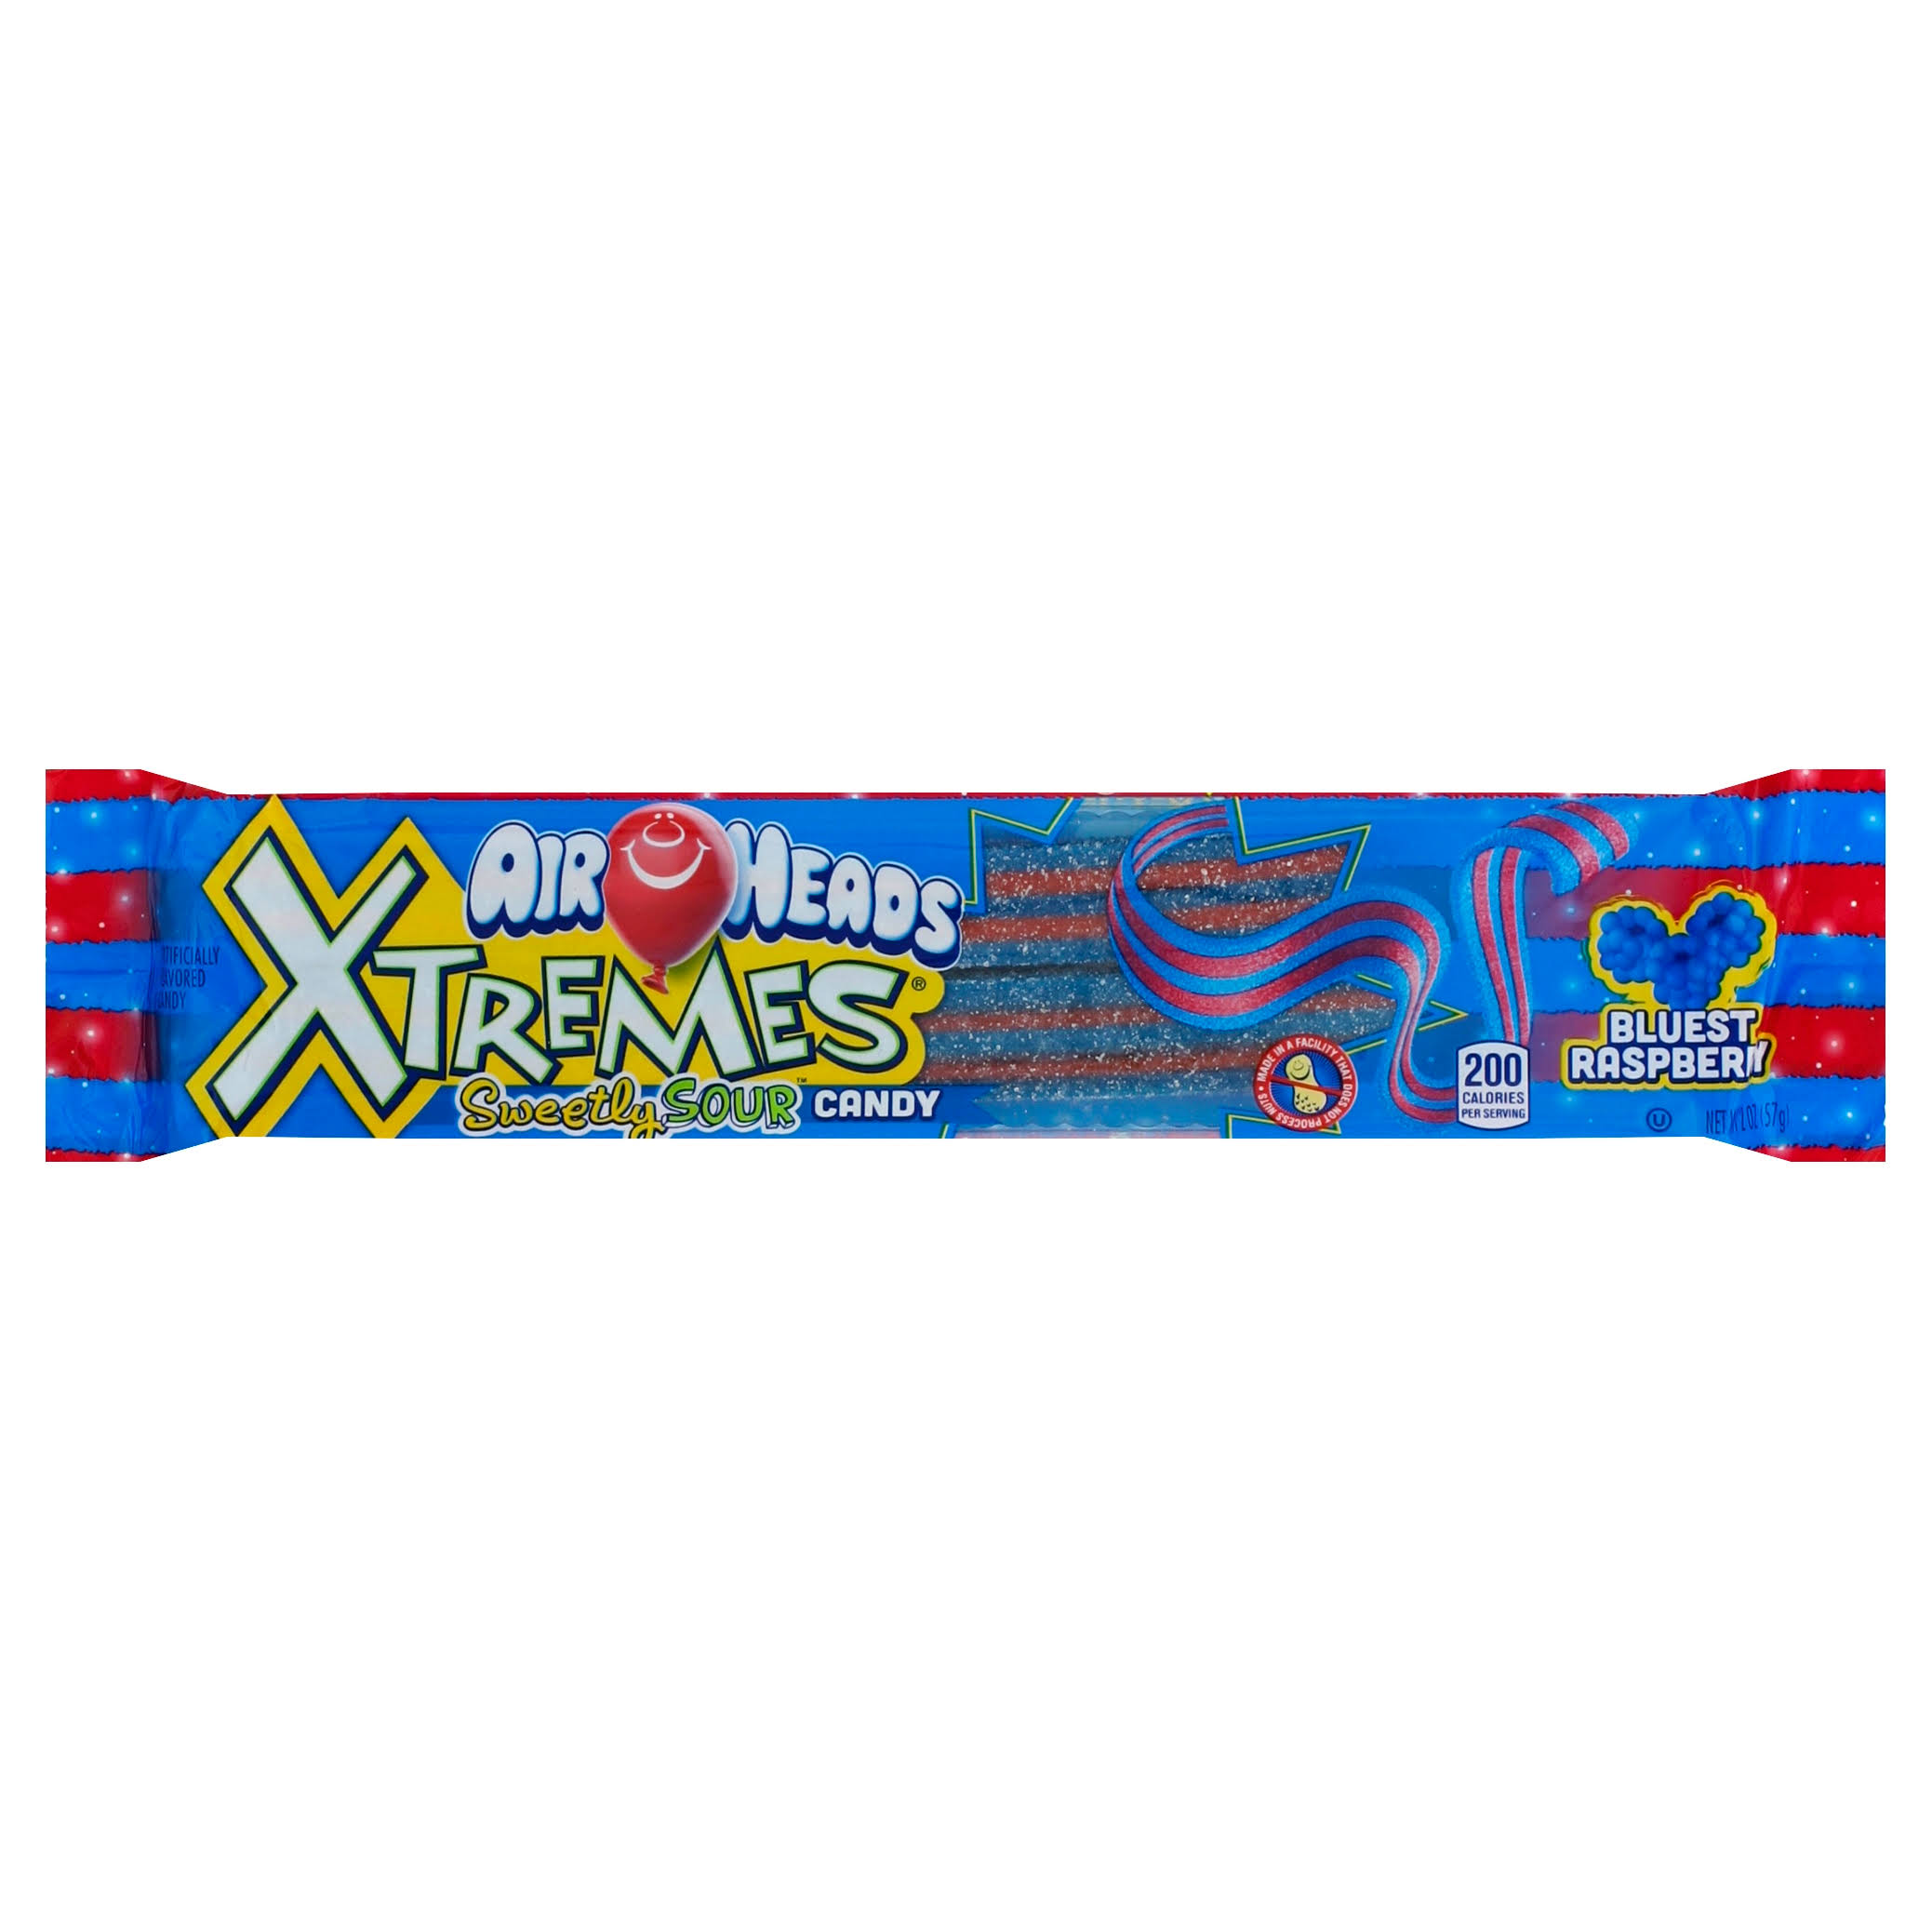 Air Heads Extremes Sweetly Sour Candy - 57g, Bluest Raspberry